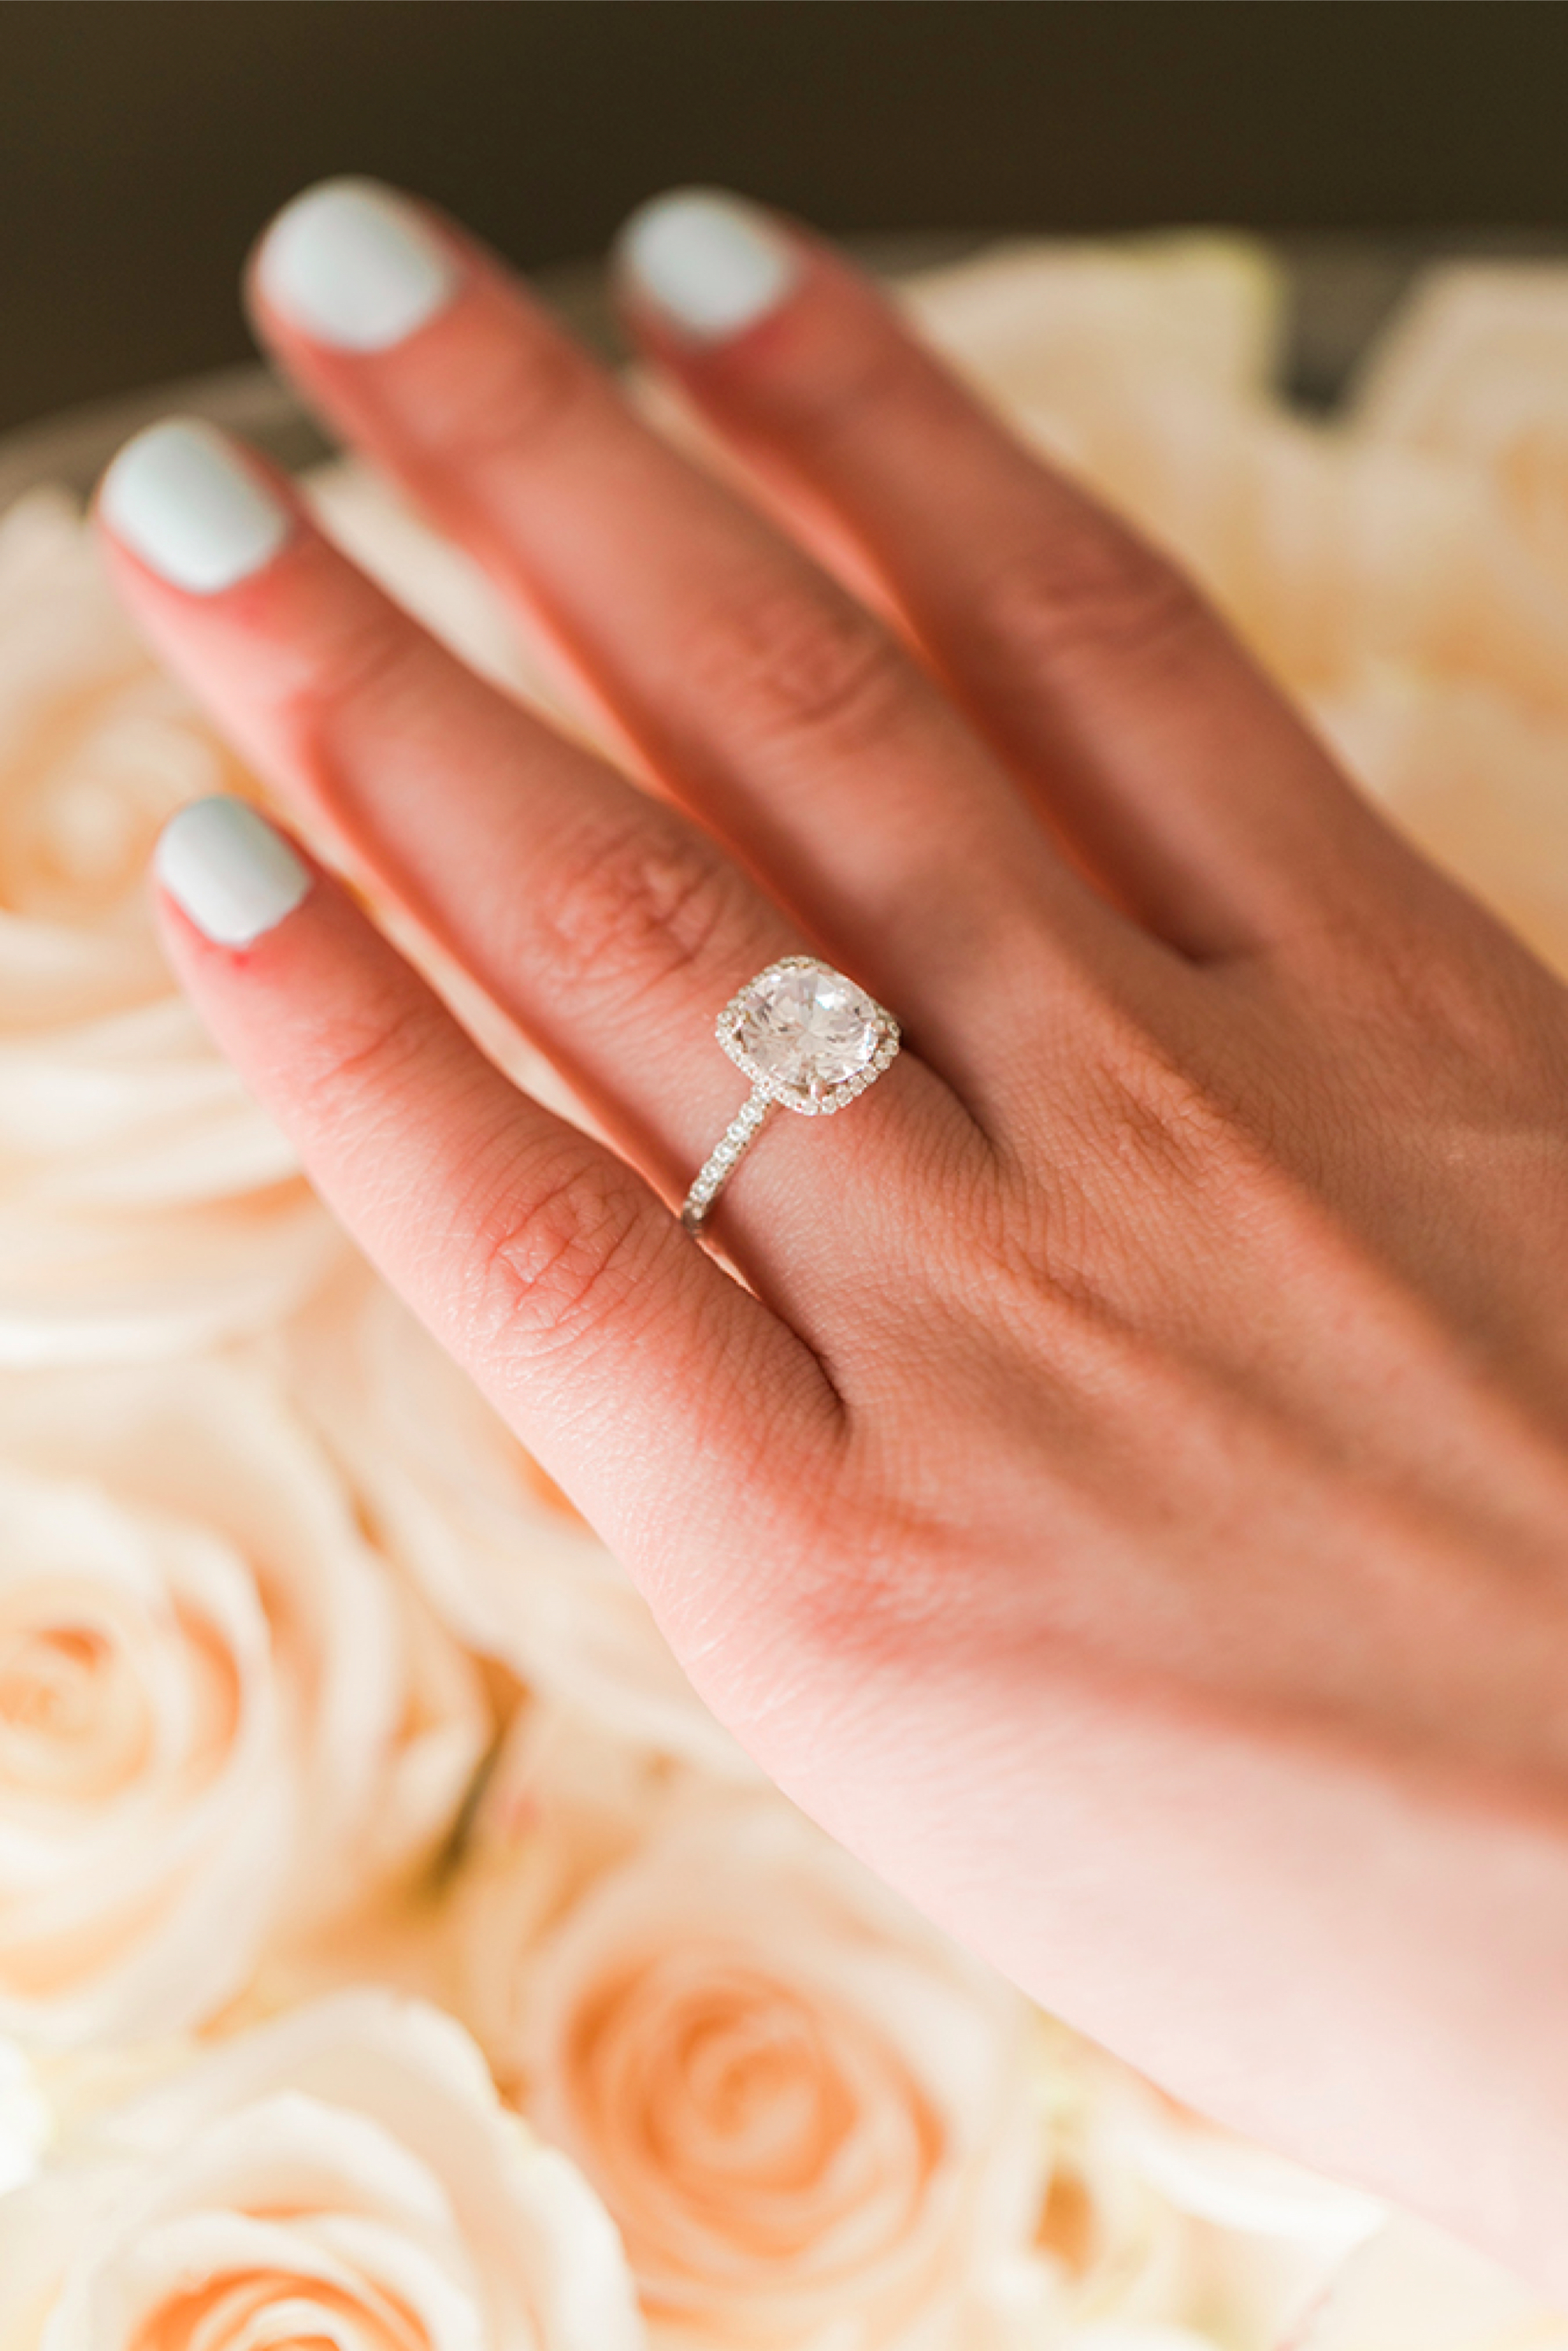 how to buy a good diamond ring